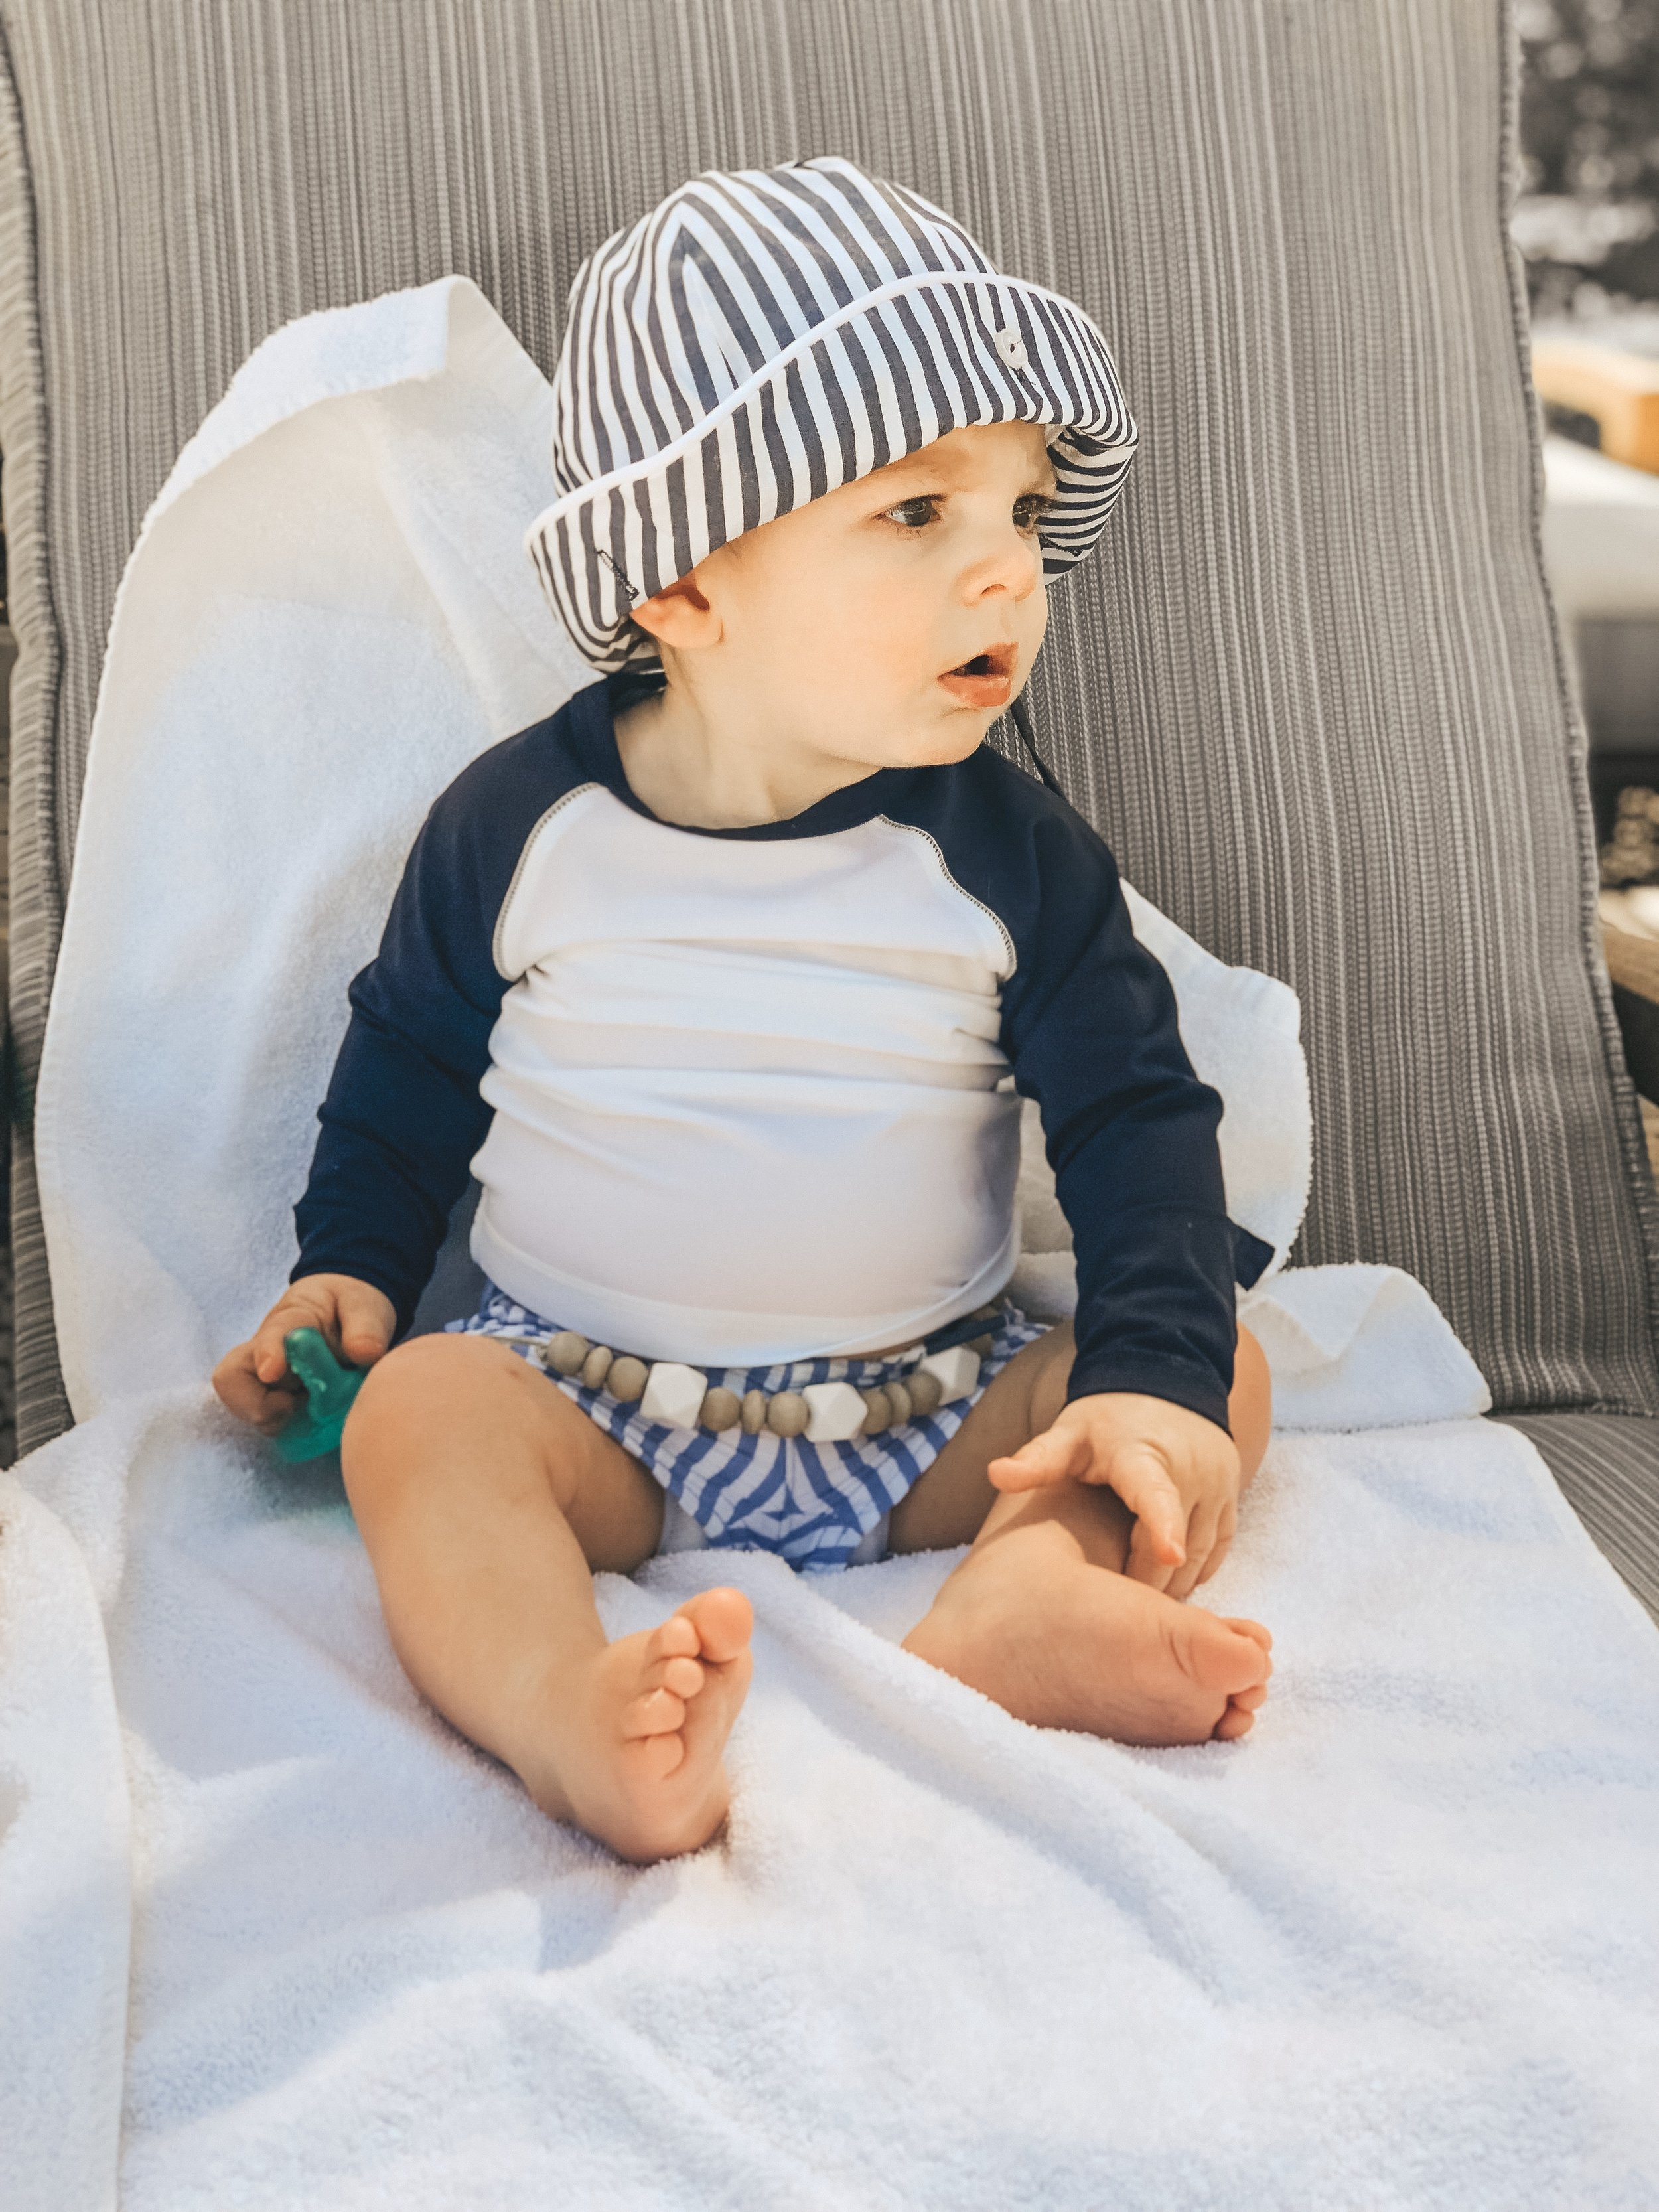 Jett Jones 11 Month Milestones.  UPF 50 Shirt for baby boy.  Baby boy summer style. The Beaufort Bonnet Company Hat.